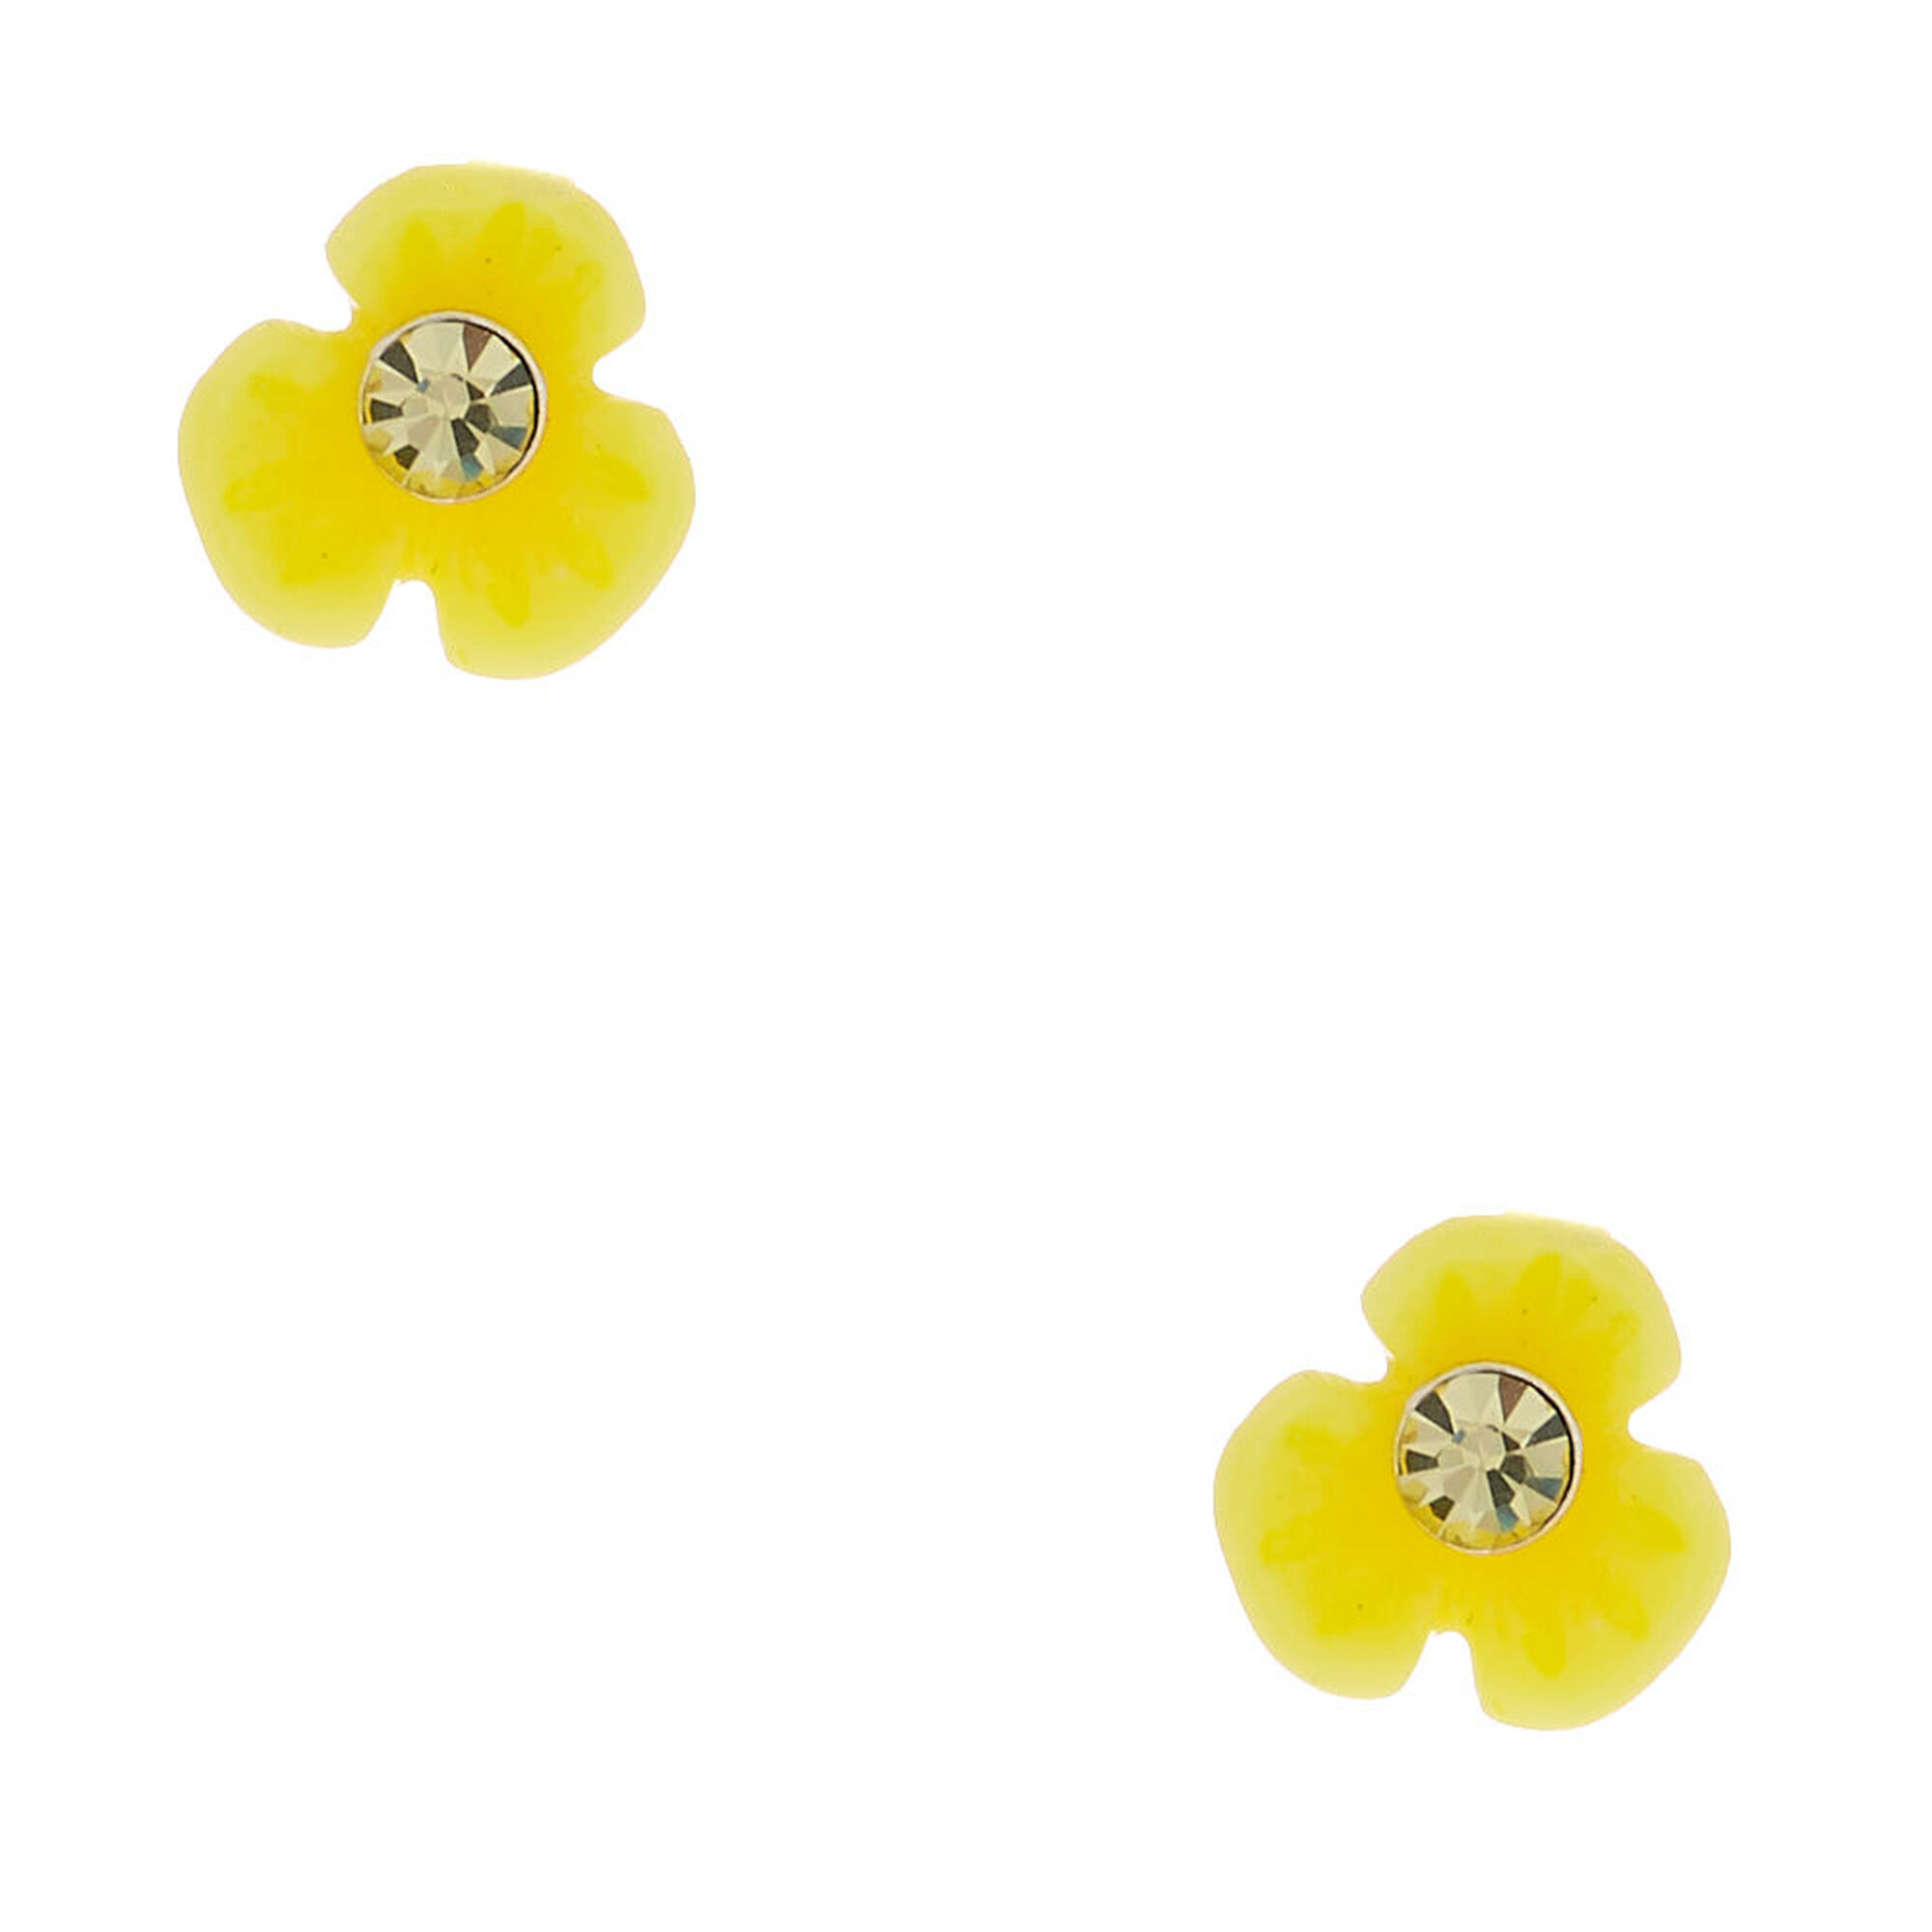 ce0567105 Sterling Silver Daisy Stud Earrings - Yellow | Icing US